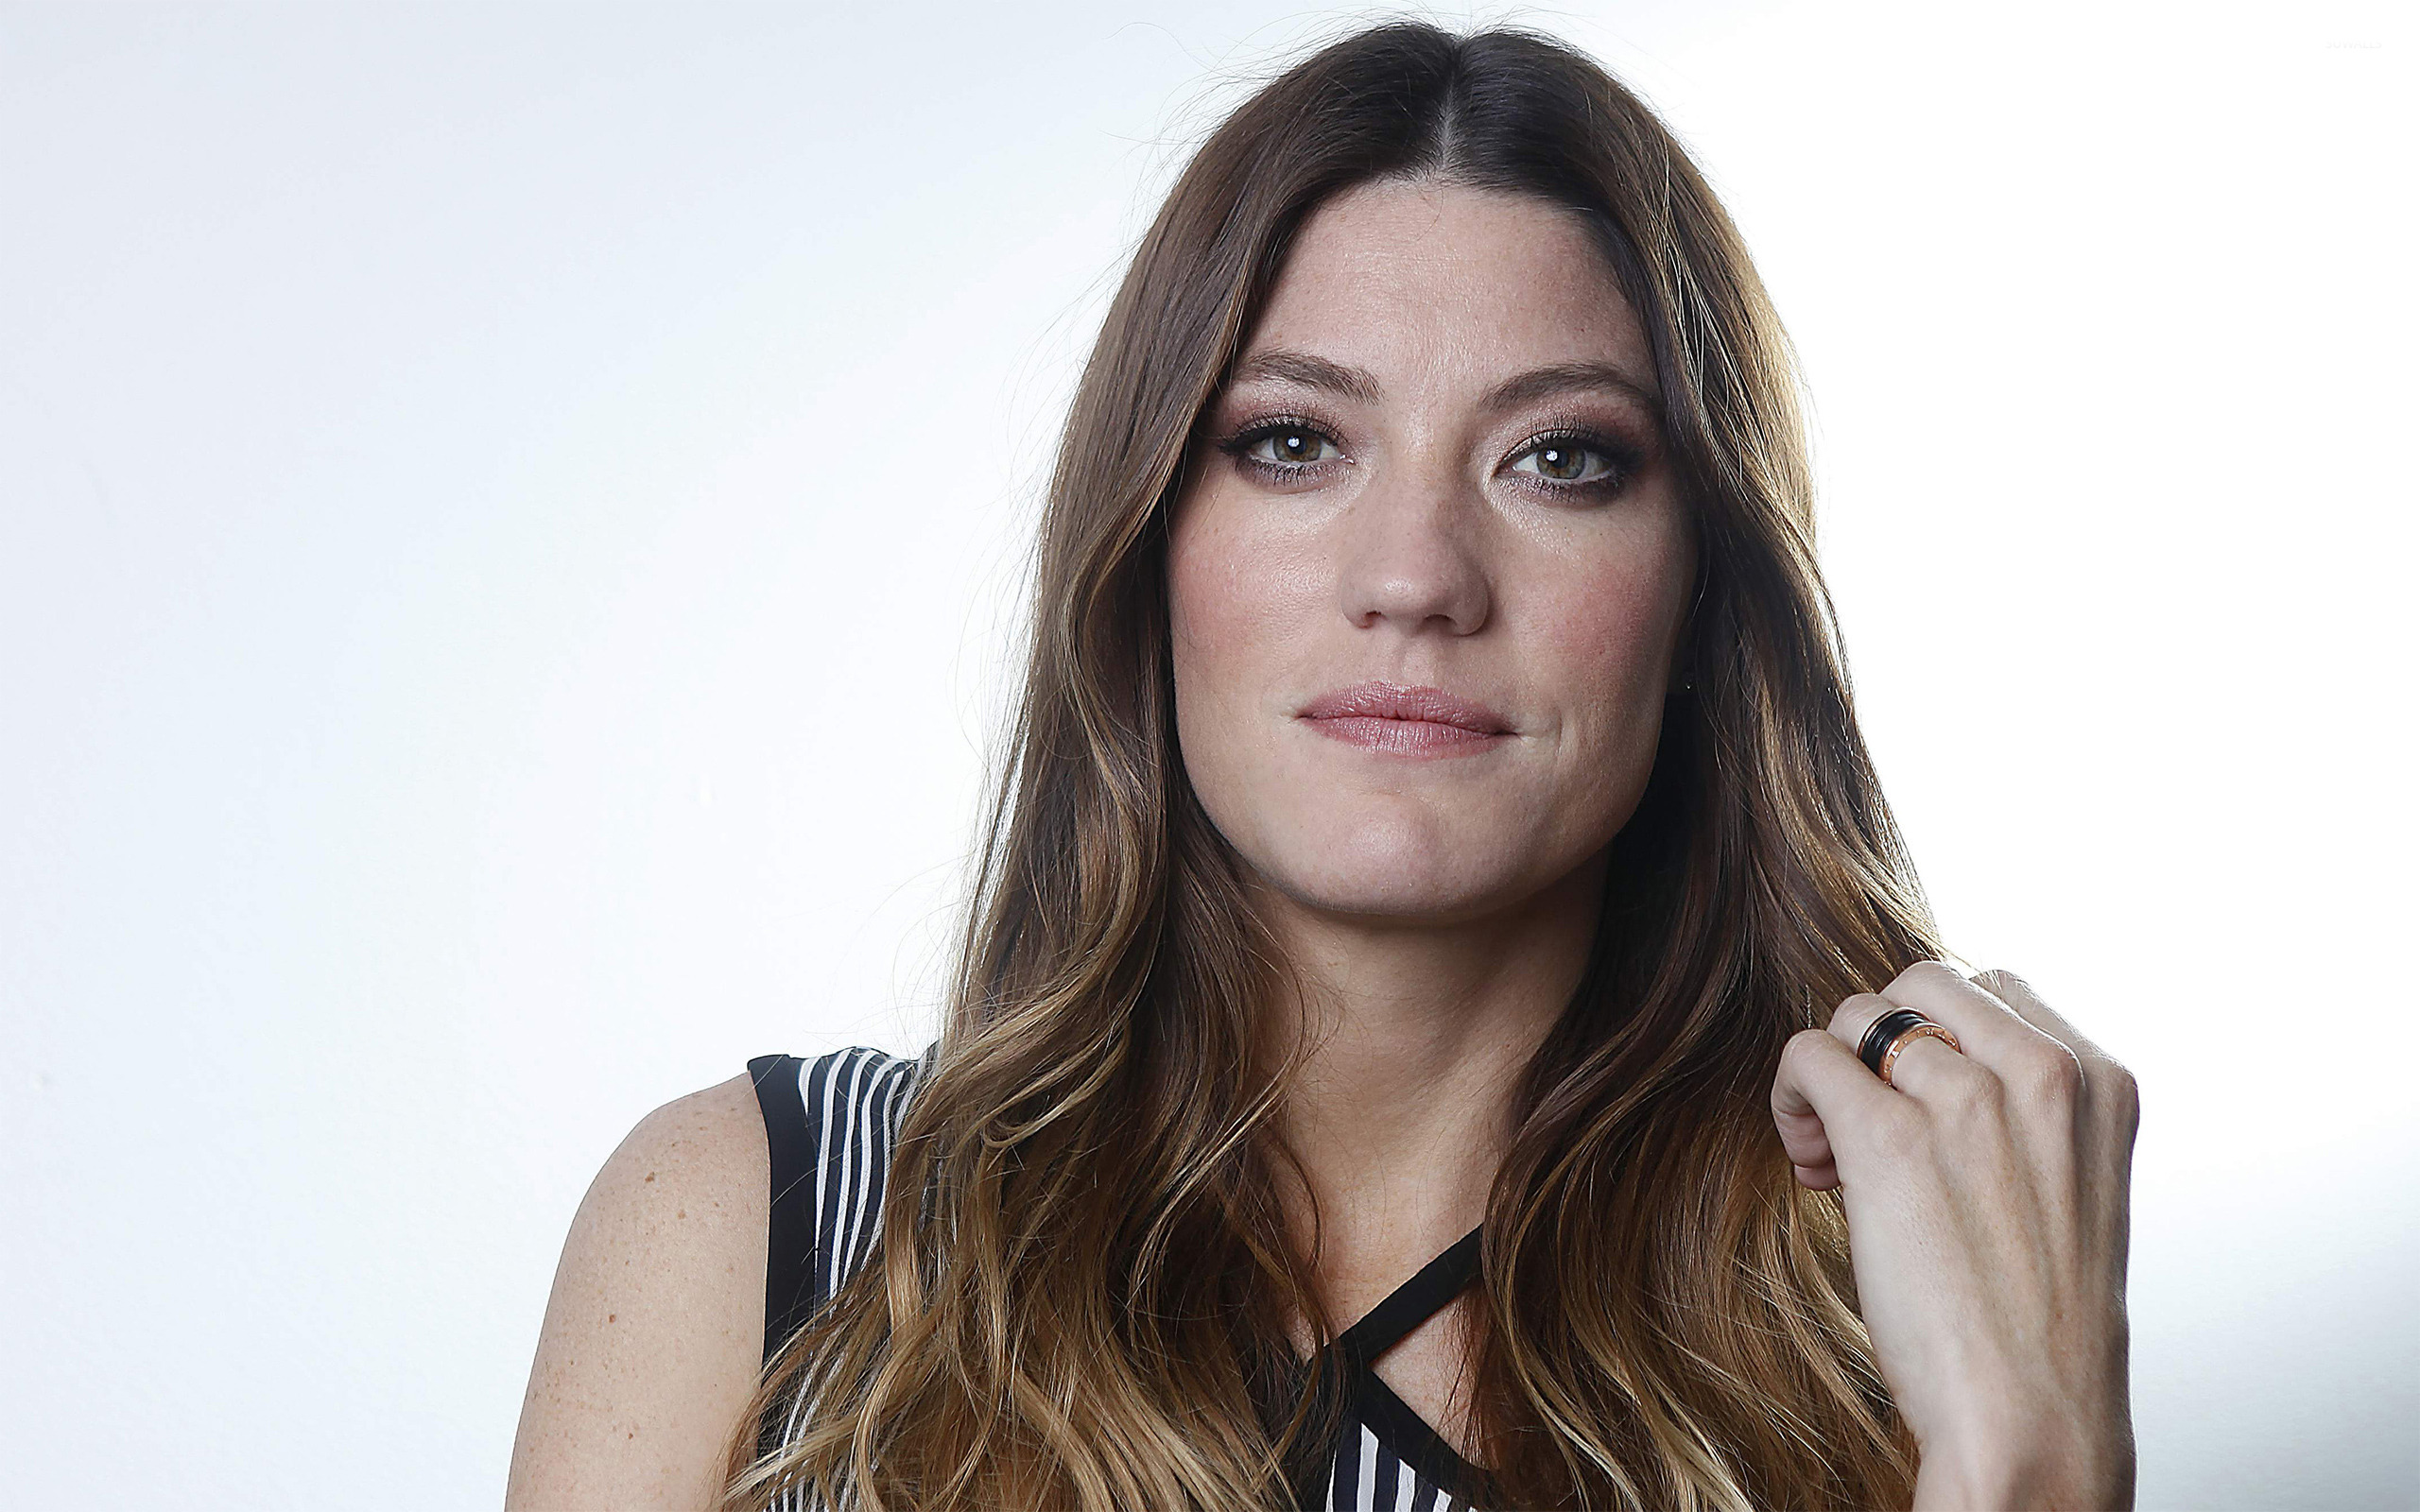 Celebrity Jennifer Carpenter nude (38 photo), Topless, Leaked, Boobs, butt 2019